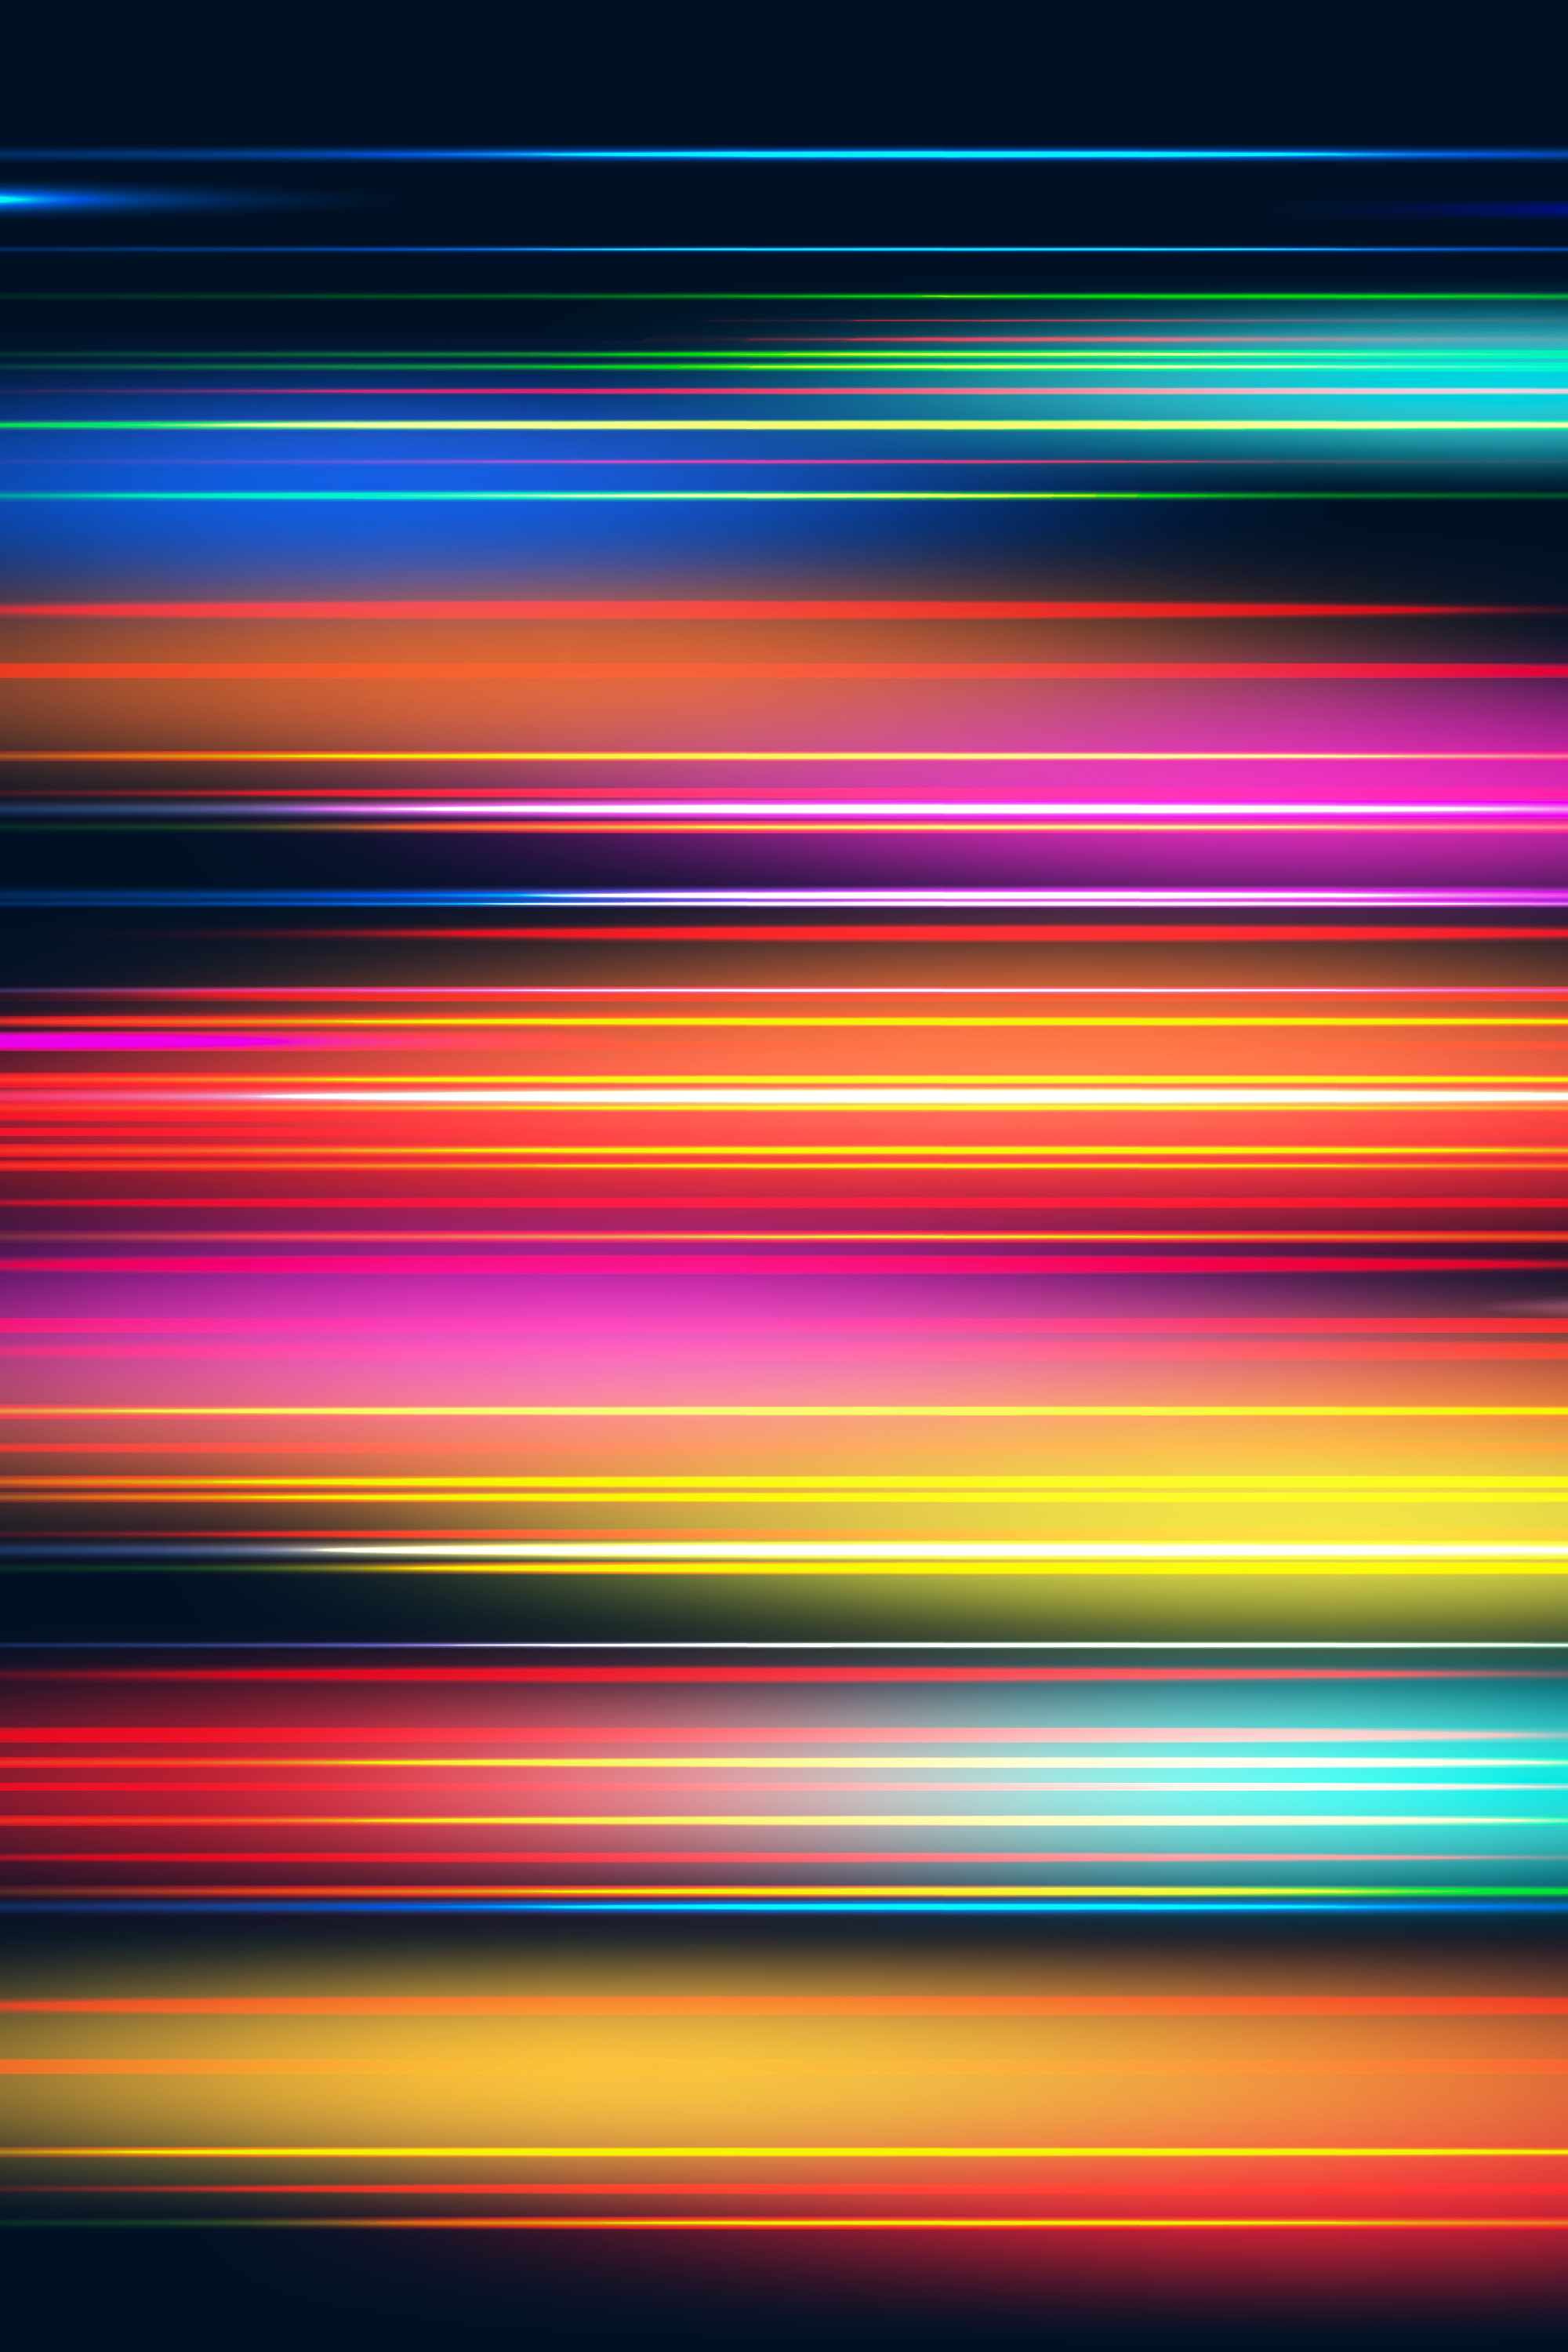 Colorful Abstract Wallpaper Pack